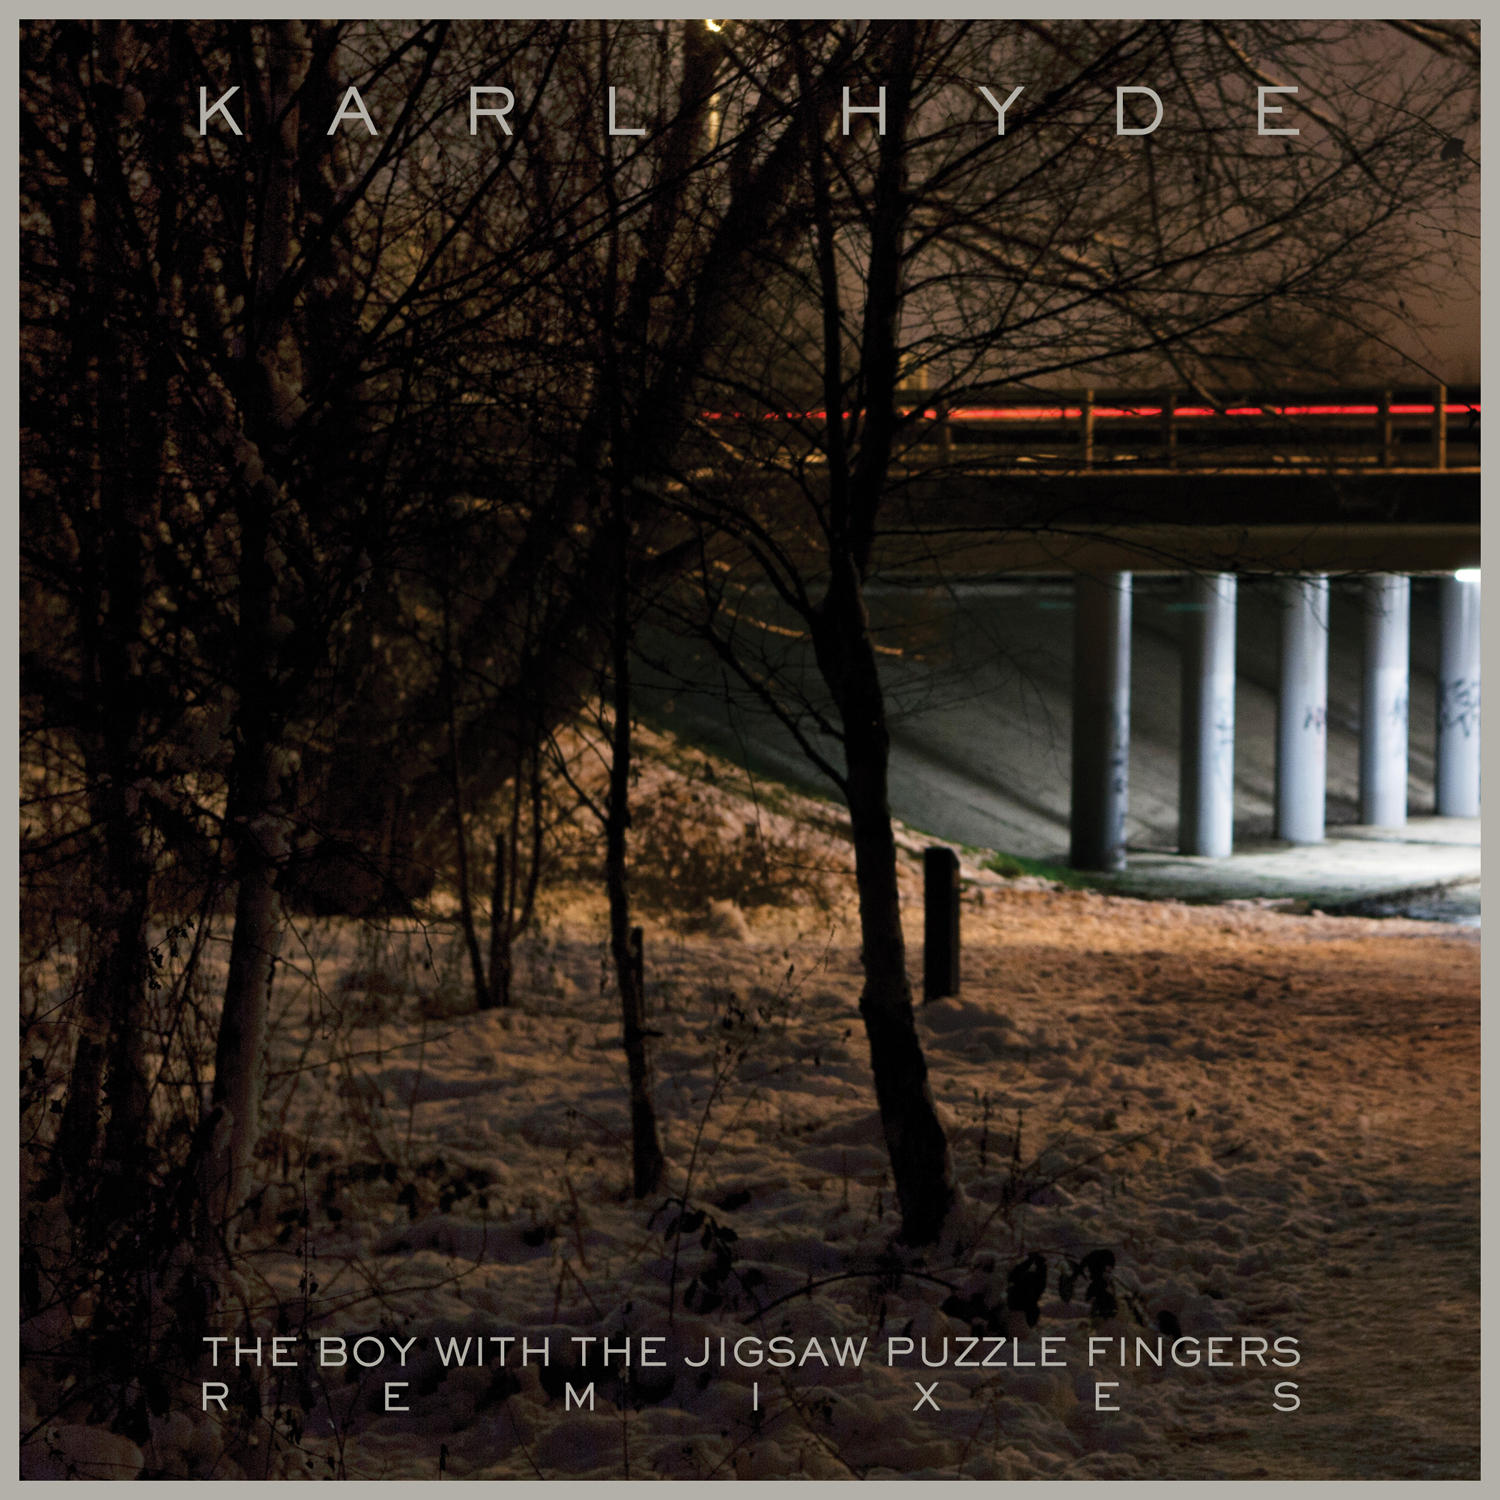 Karl Hyde - The Boy With The Jigsaw Puzzle Fingers